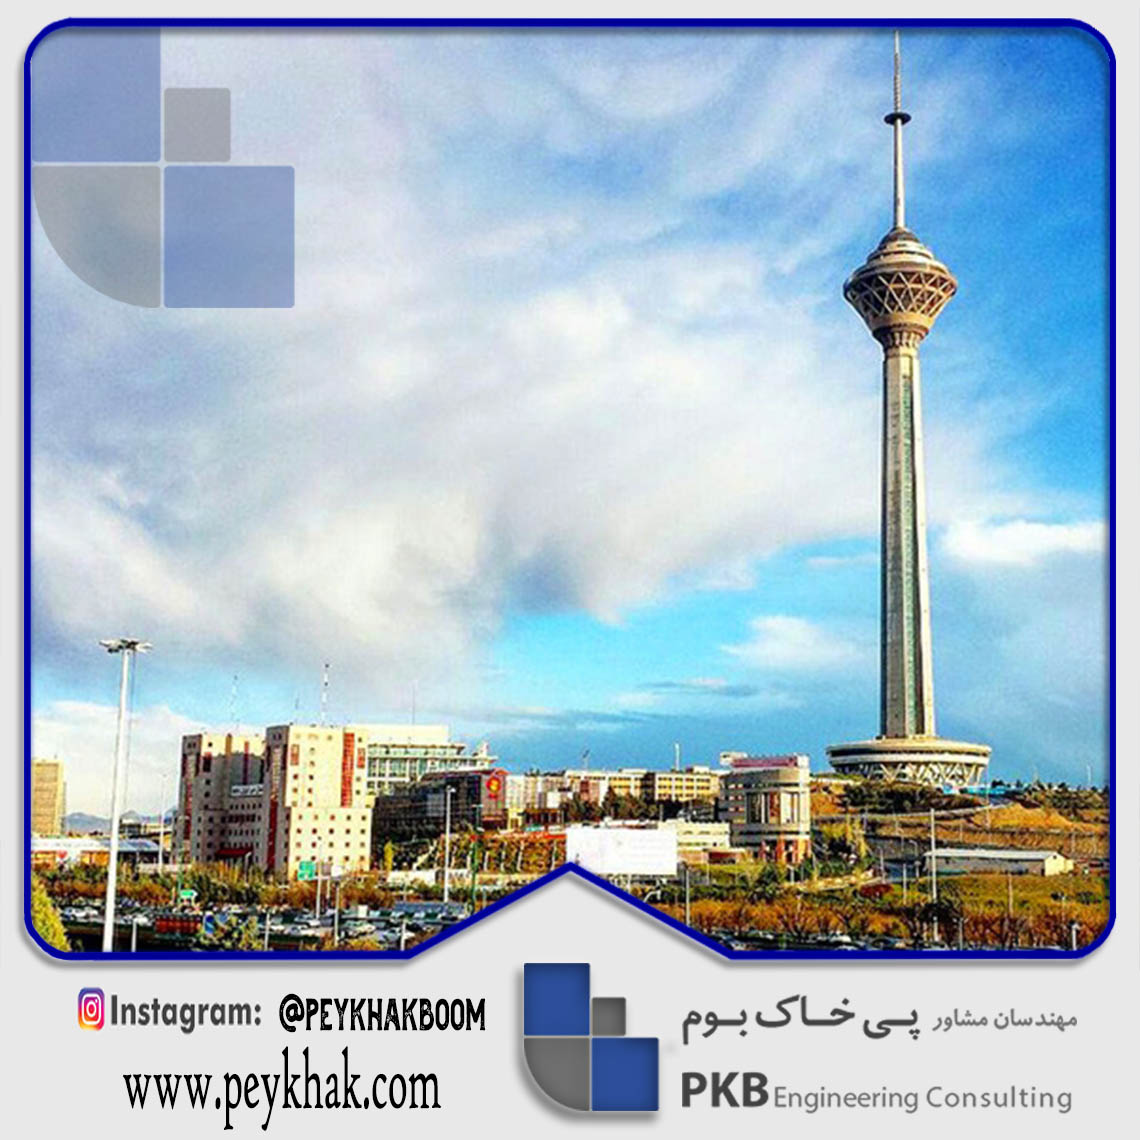 7 of Iran's tallest towers